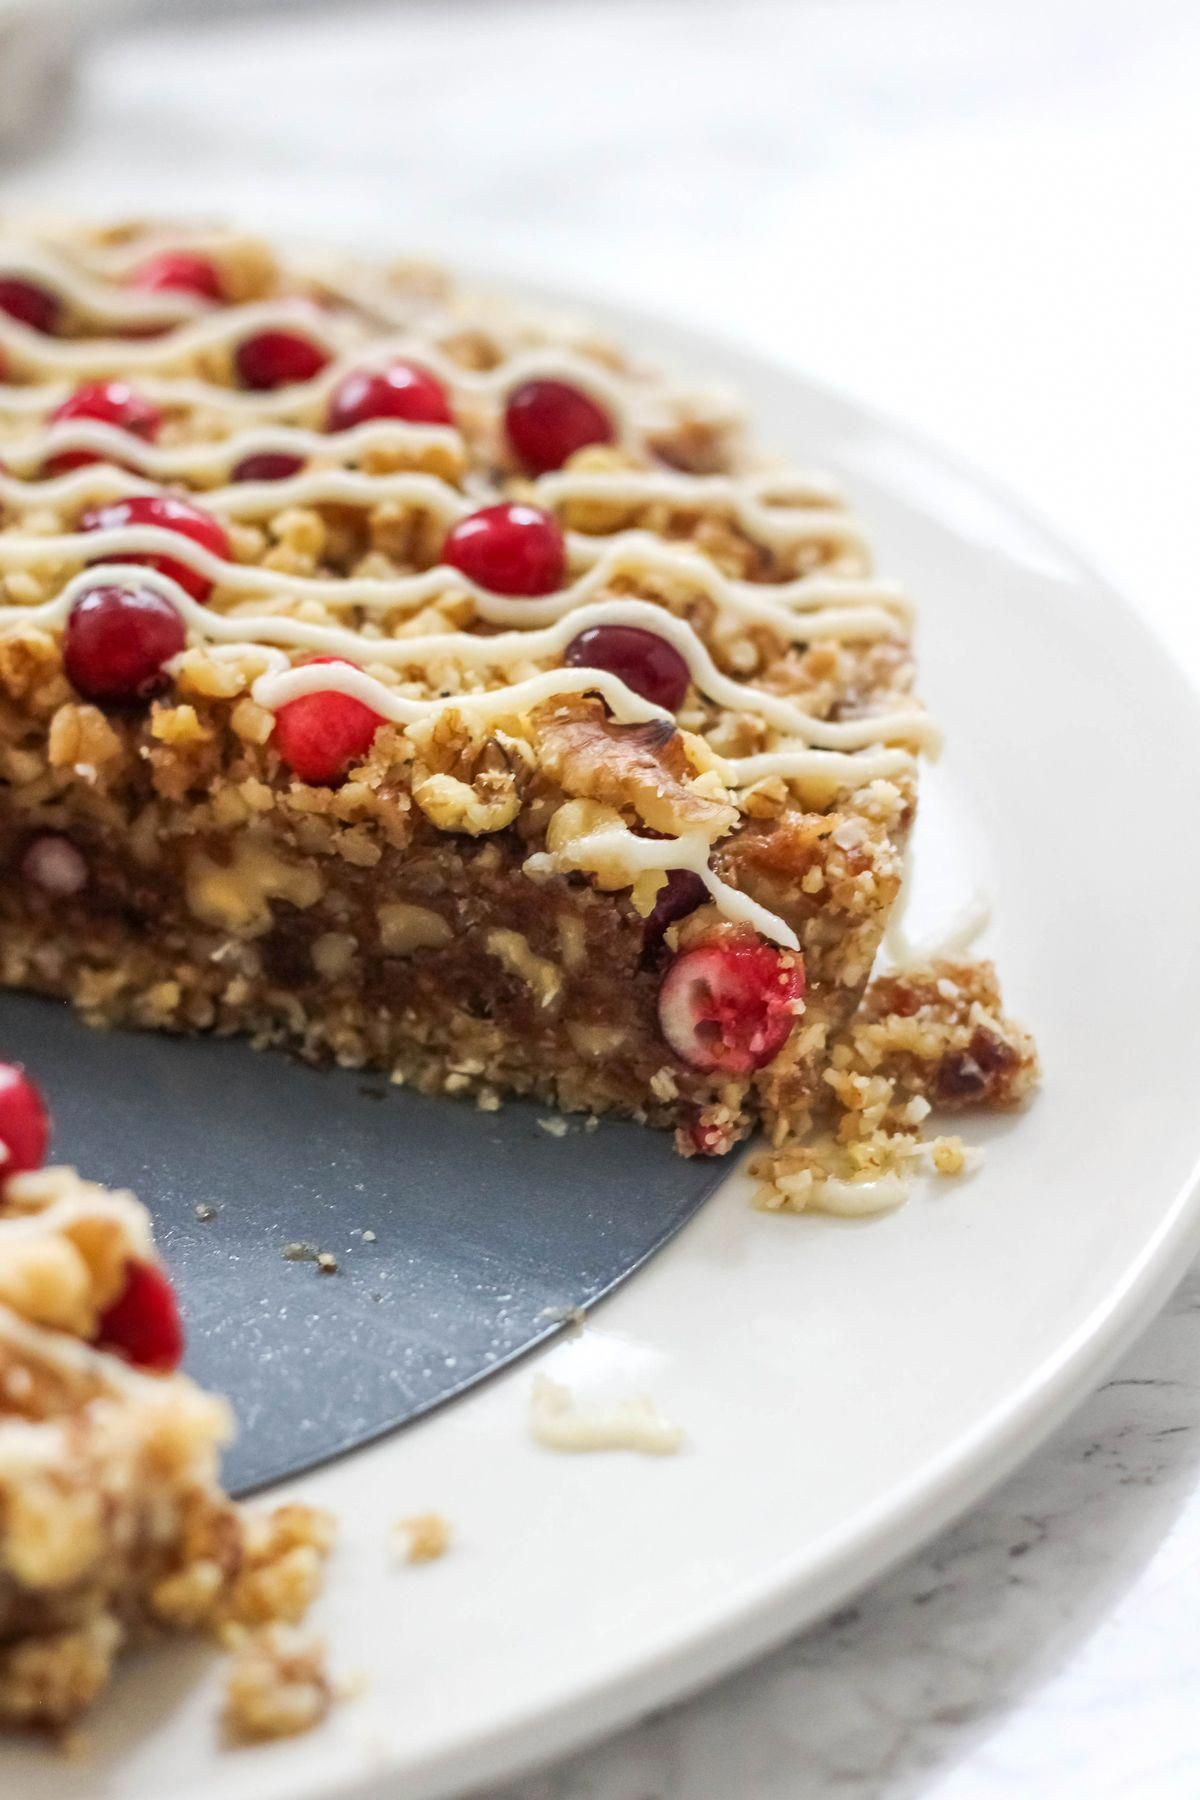 This No-Bake Cranberry Walnut Tart comes together in just minutes and makes great addition to your Thanksgiving or holiday dessert table! Full of walnuts, dates, and cranberries, your guests will be be going for seconds of this guilt-free dessert #vegandessert #glutenfree #paleodessert #nobaketart #cranberrydessert #walnuttart #bakedambrosia #holidayvegandessert